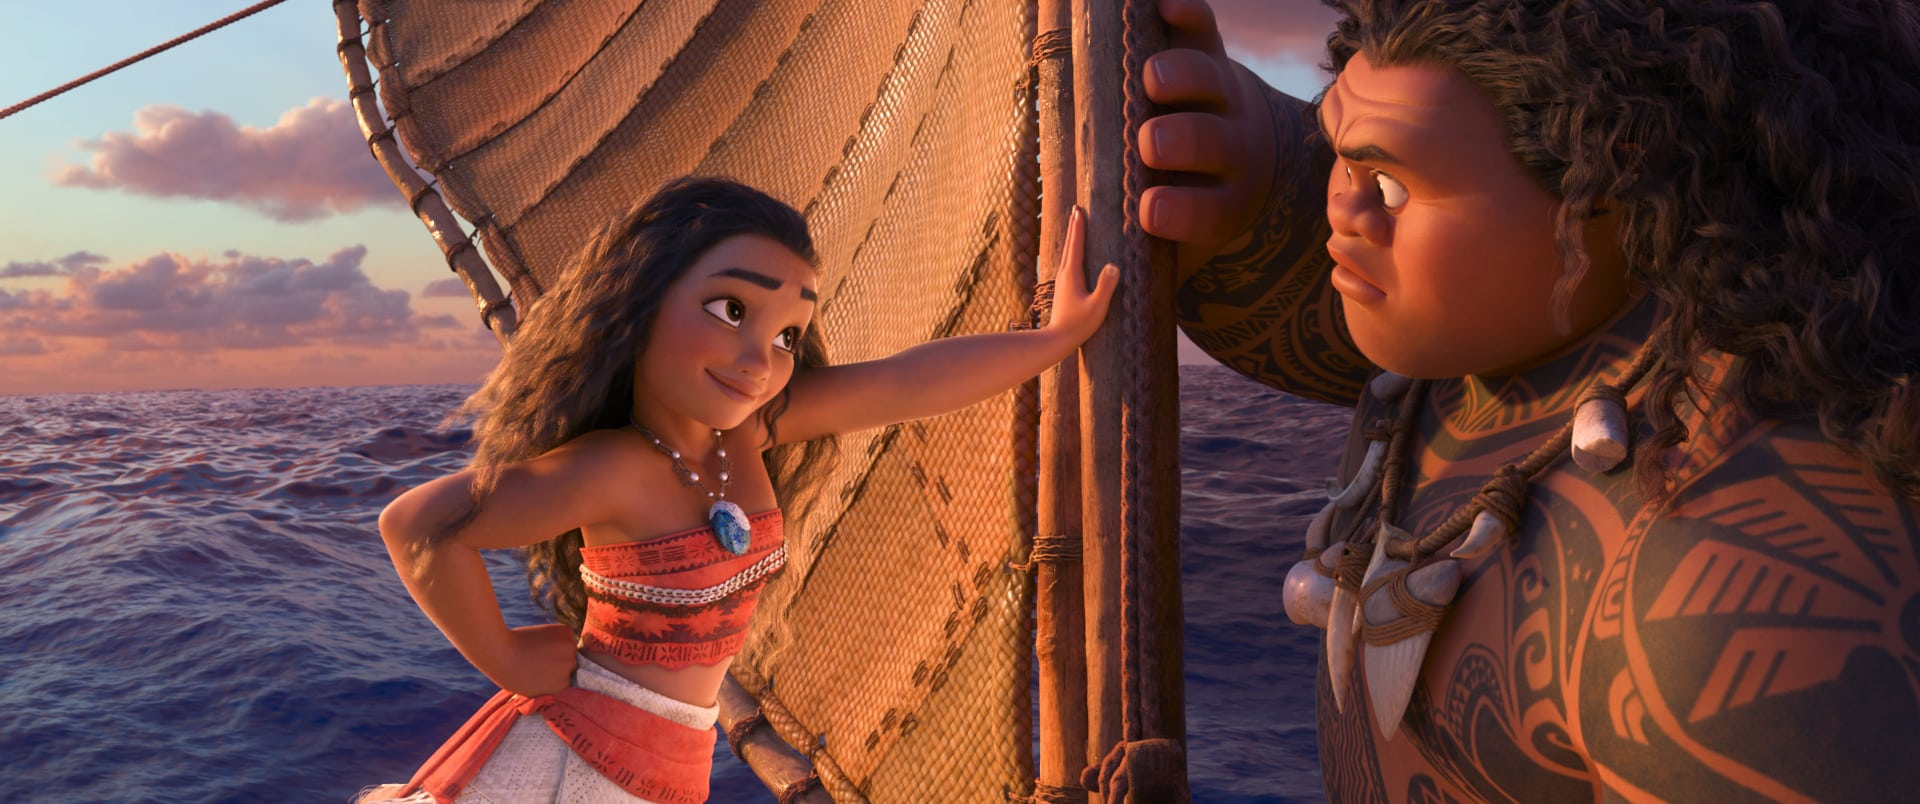 NEW Trailer for Disney's Moana - in Theaters November 23! #MoanaNEW Trailer for Disney's Moana - in Theaters November 23! #Moana